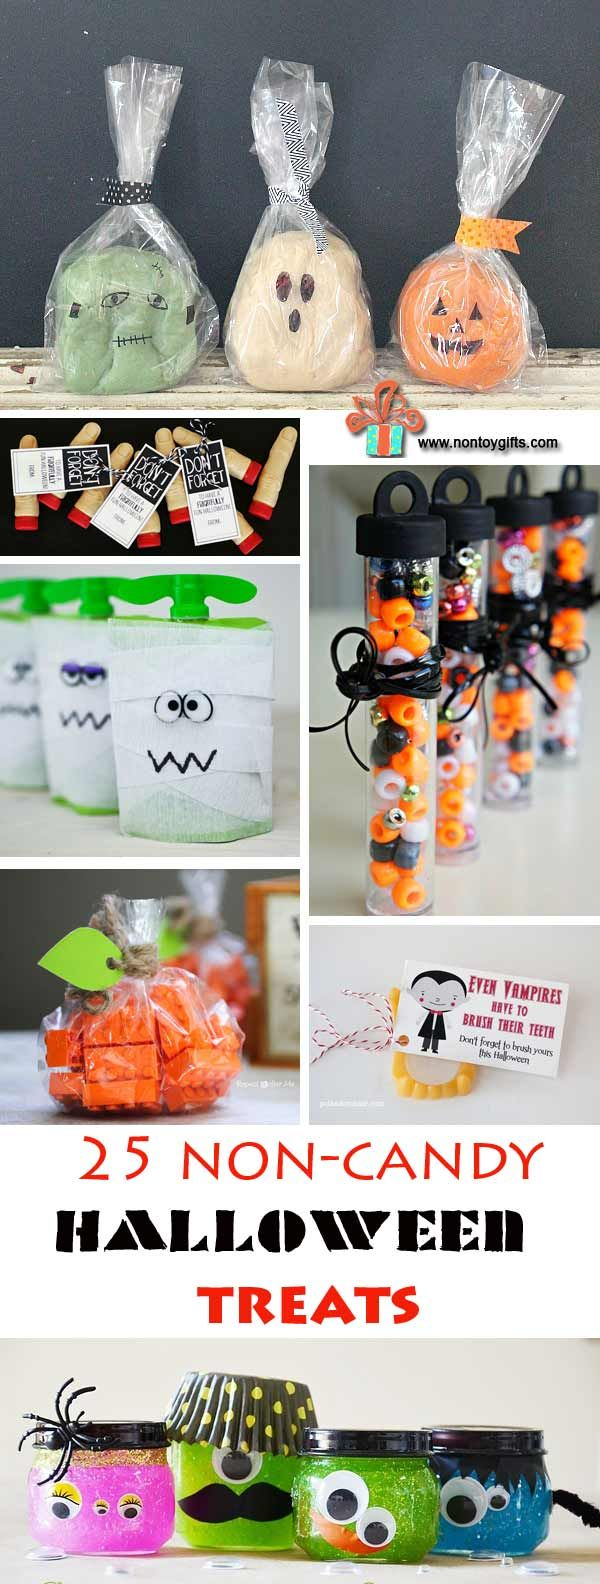 25 Non-Candy Halloween treats to make for kids - great ideas for kids with…